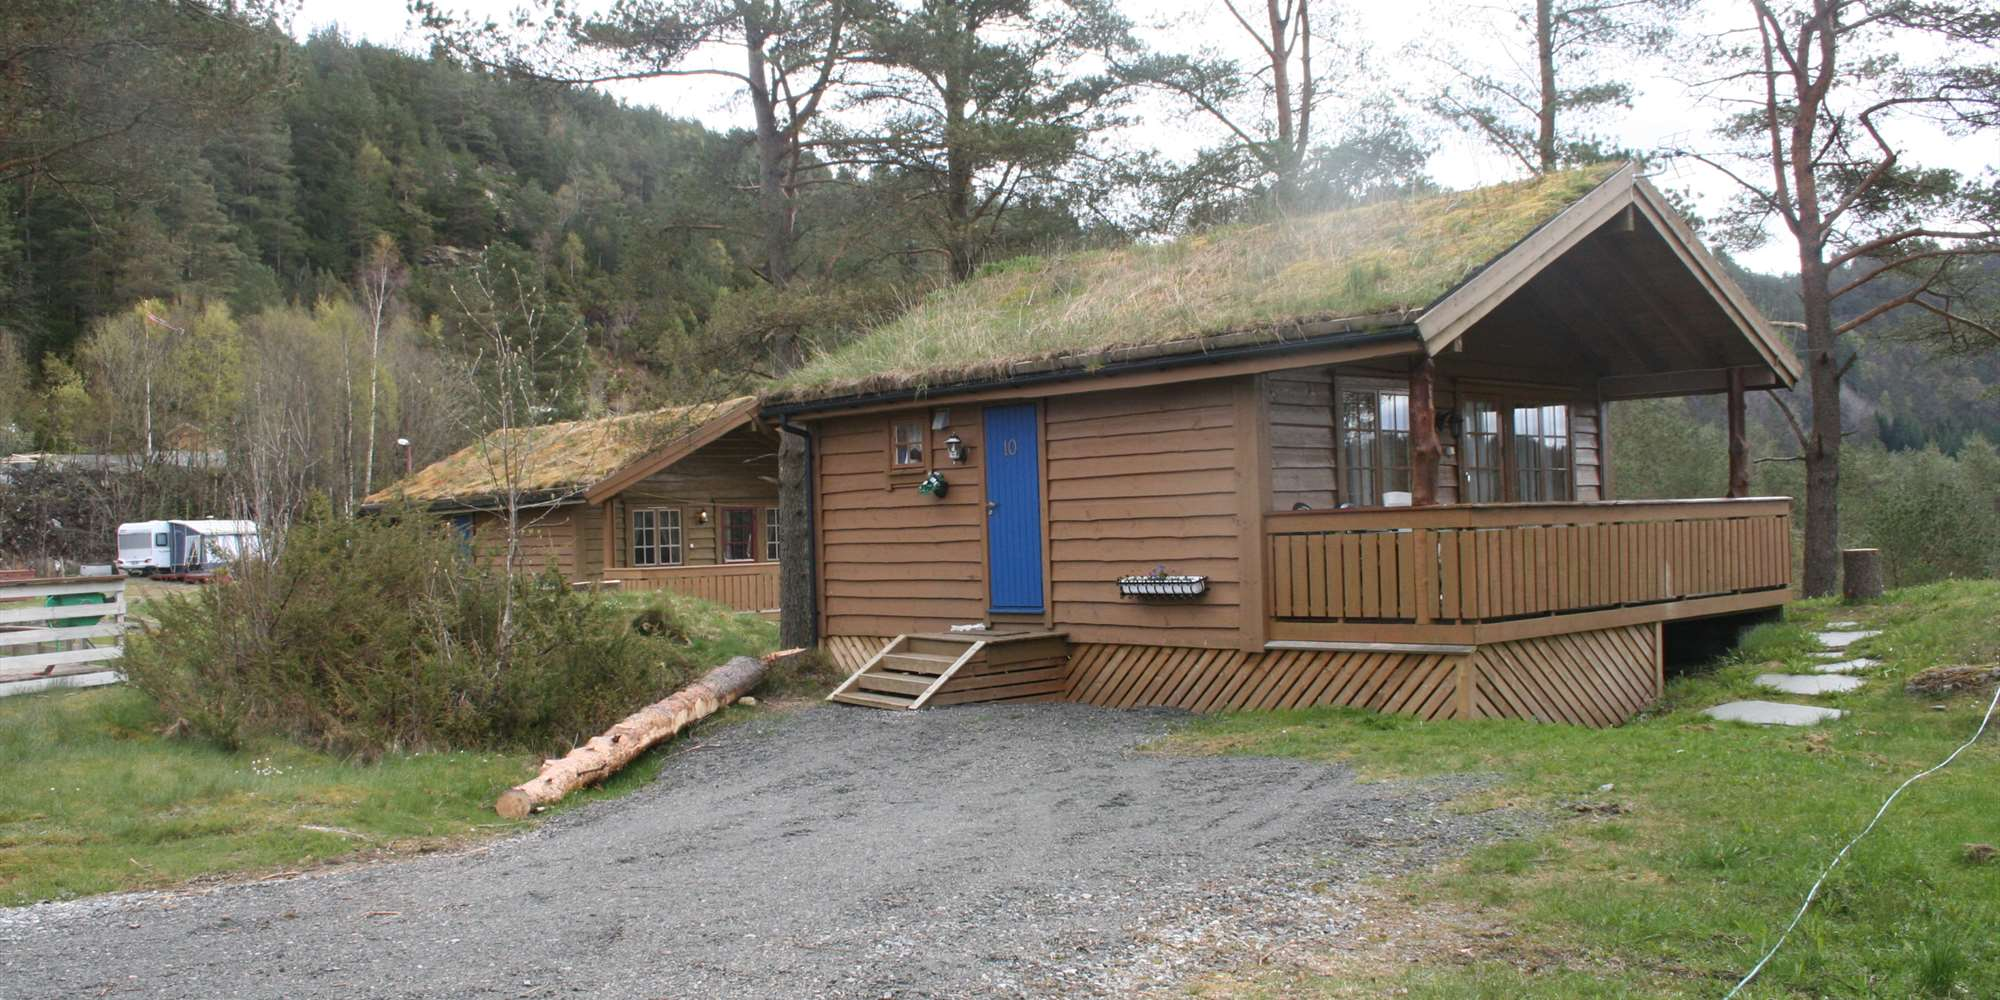 Bruvoll camping cabins accommodation in bergen for Camps and cottages